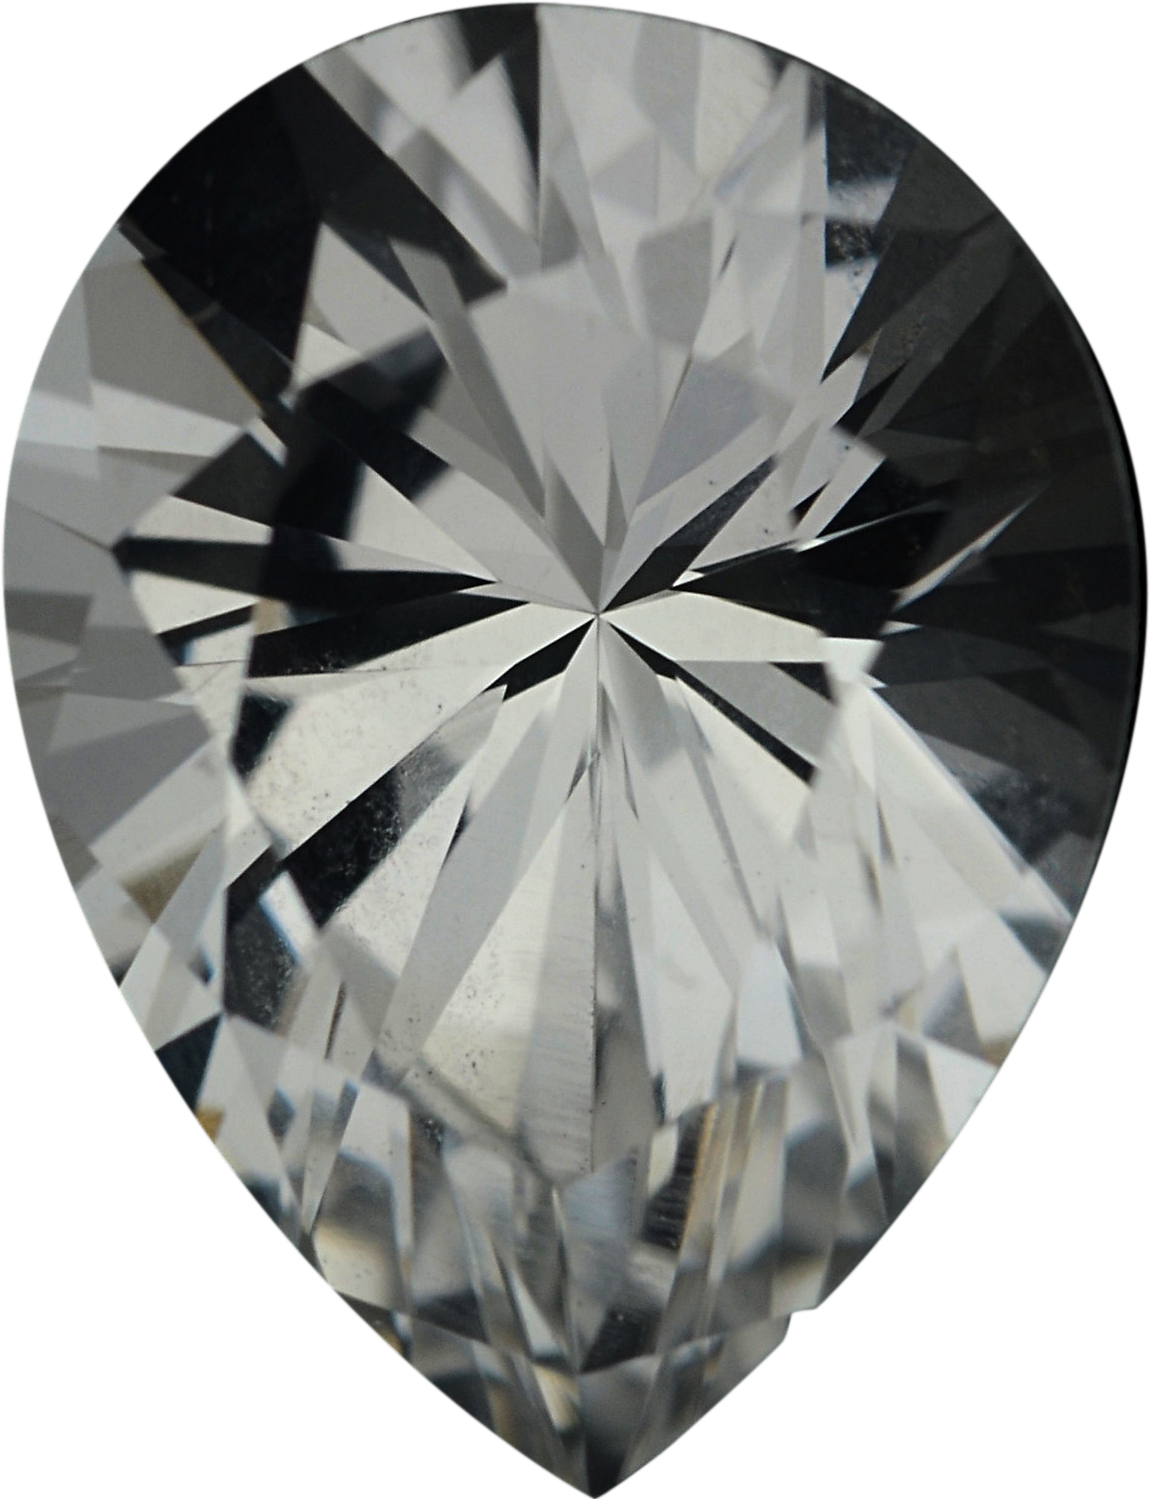 1.85 carats White Loose Sapphire Gemstone in Pear Cut, 8.95 x 6.8 mm